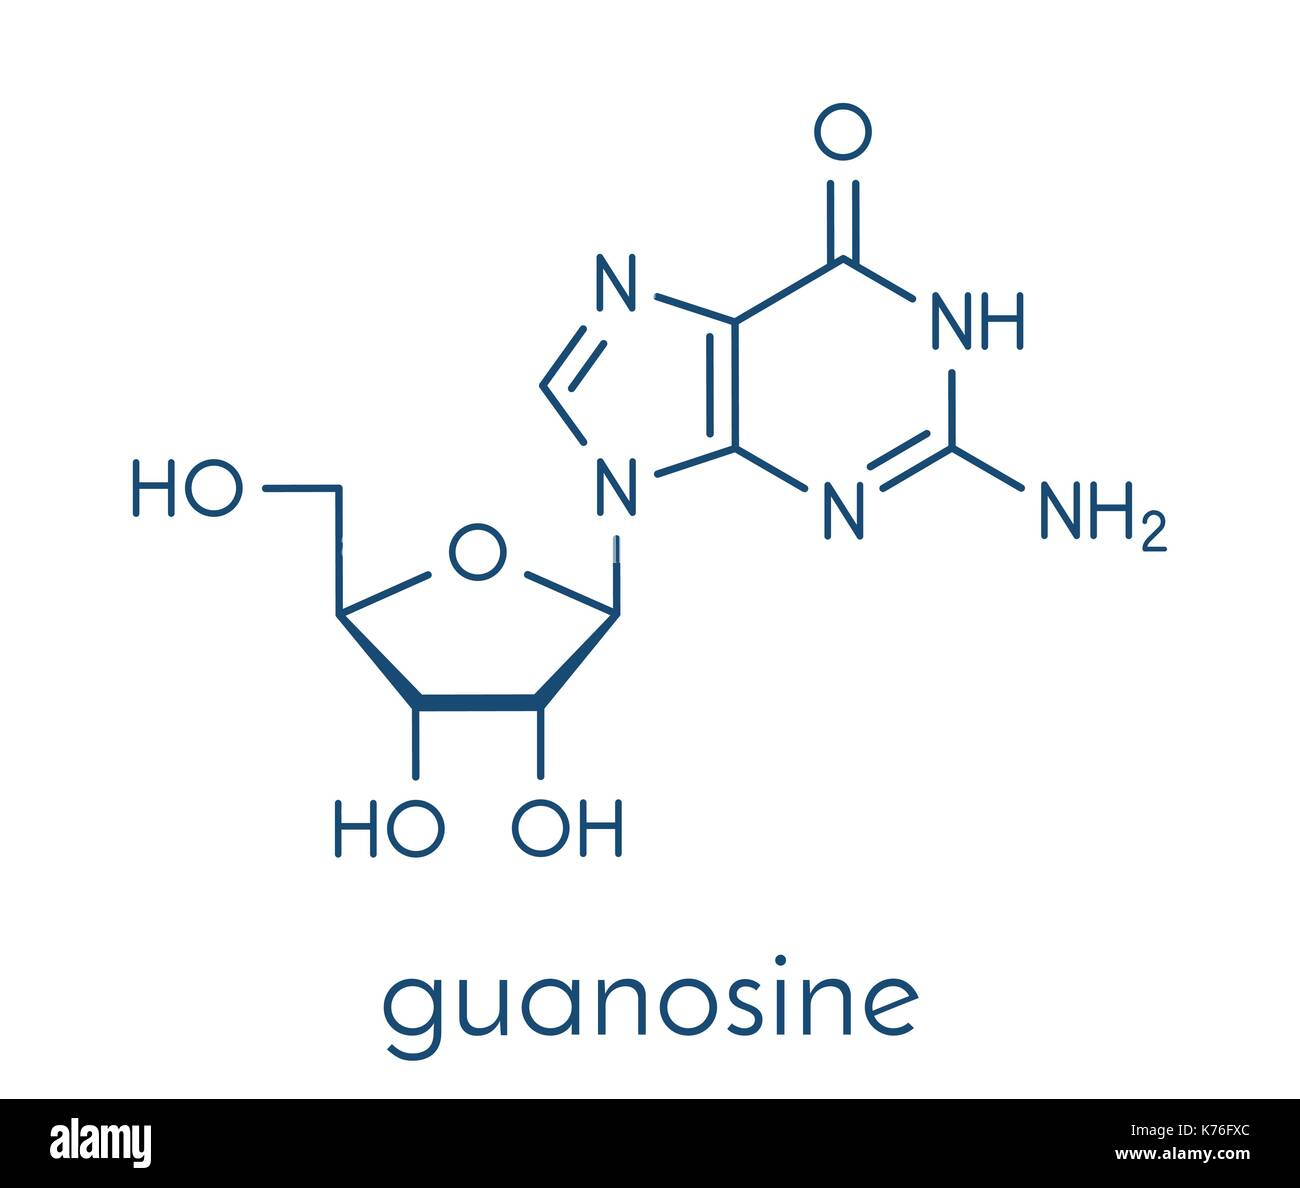 Guanosine purine nucleoside molecule. Important component of GTP, GDP, cGMP, GMP and RNA. Skeletal formula. - Stock Image